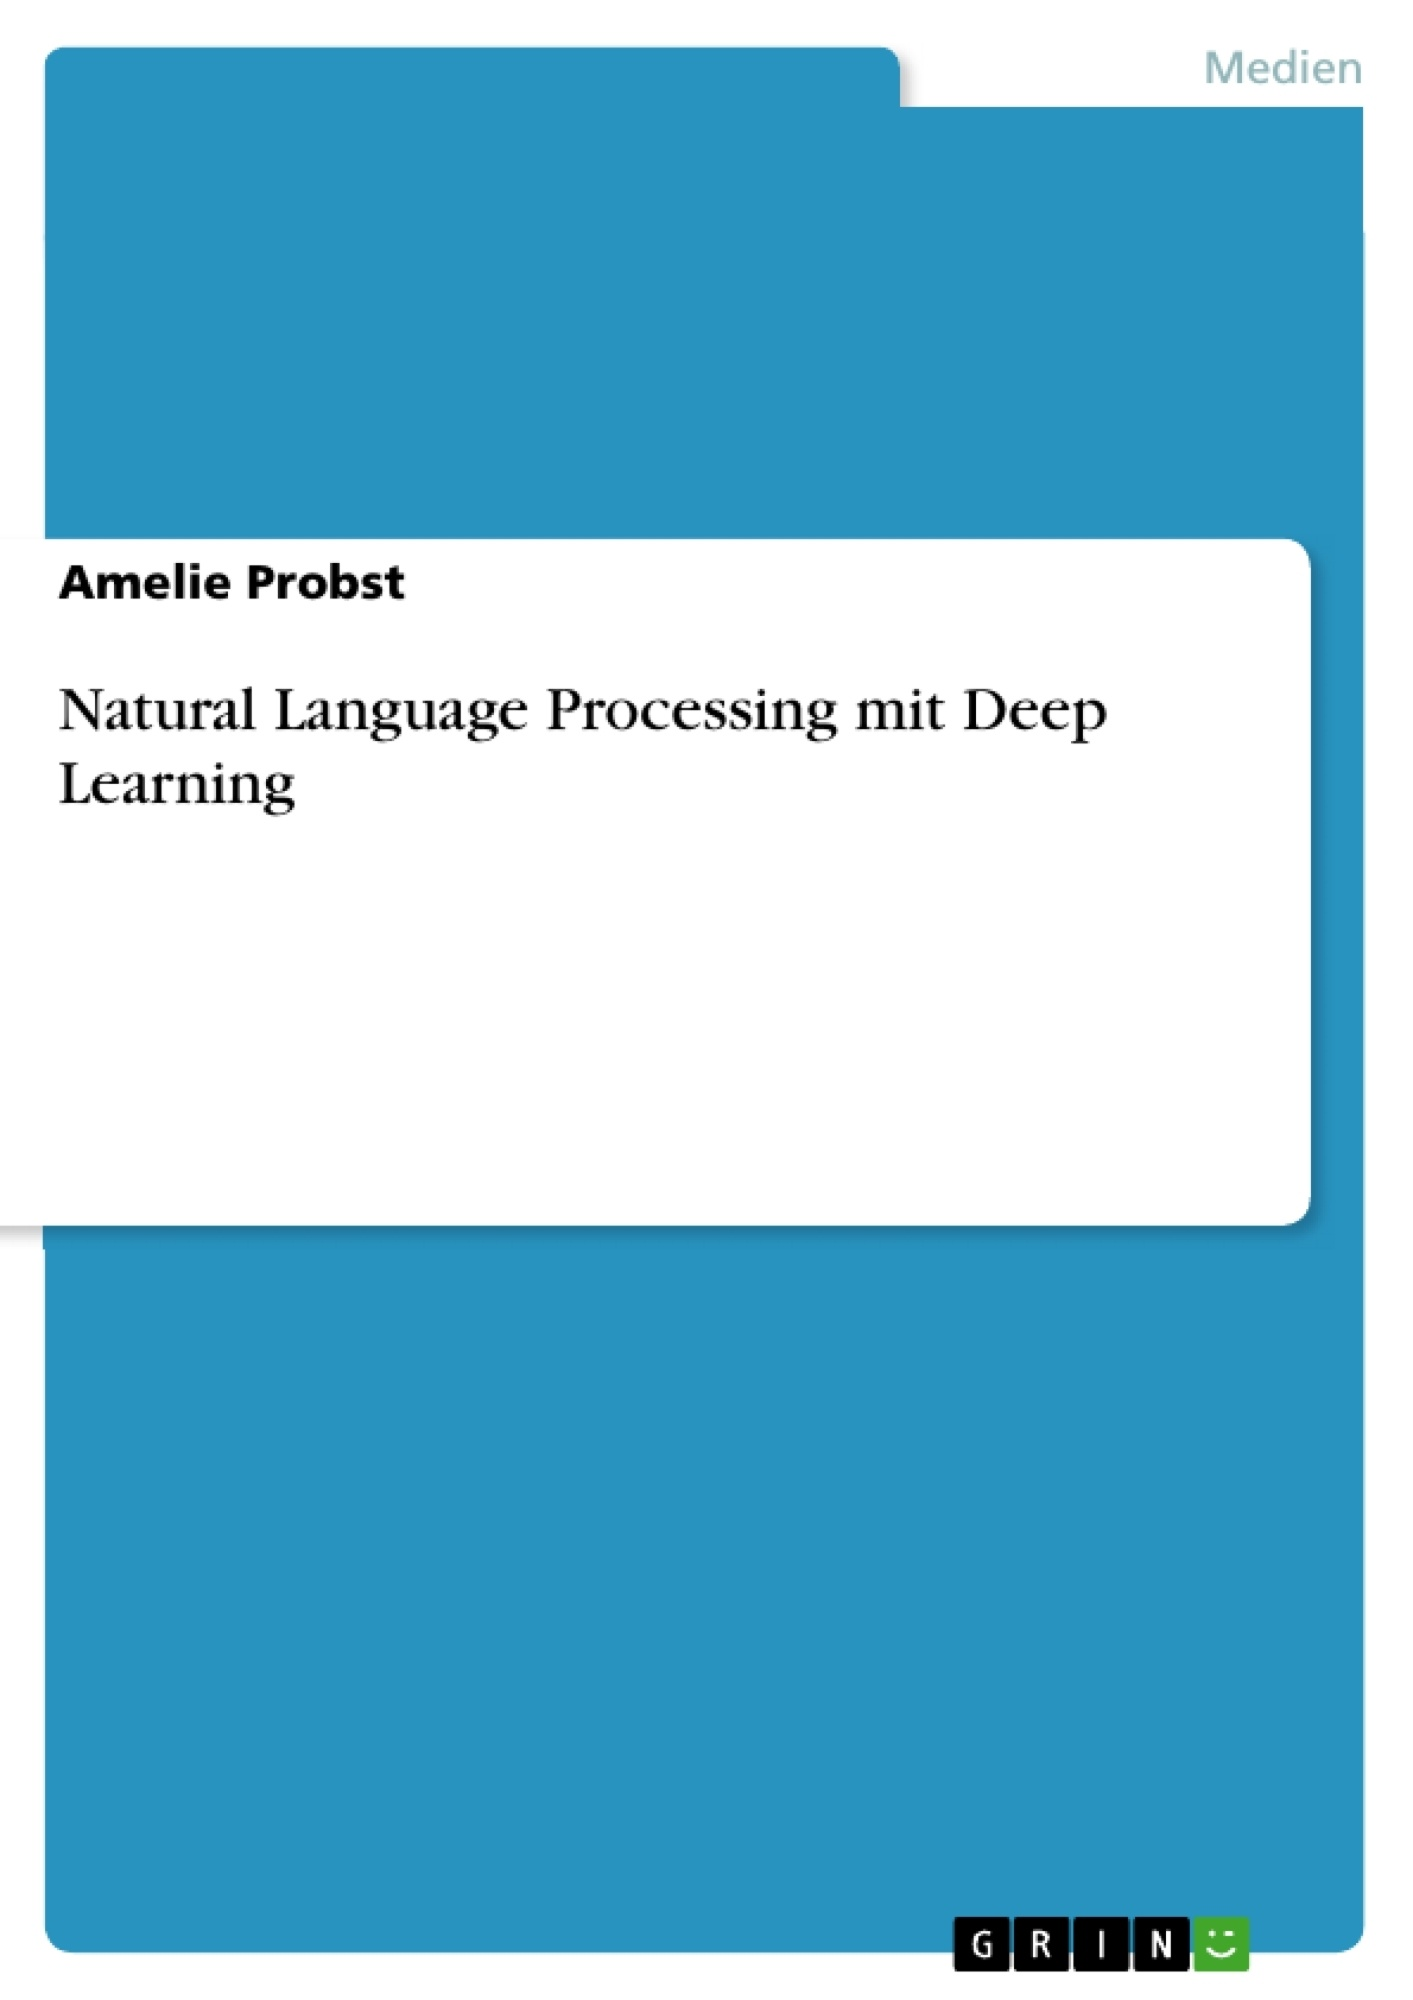 Titel: Natural Language Processing mit Deep Learning